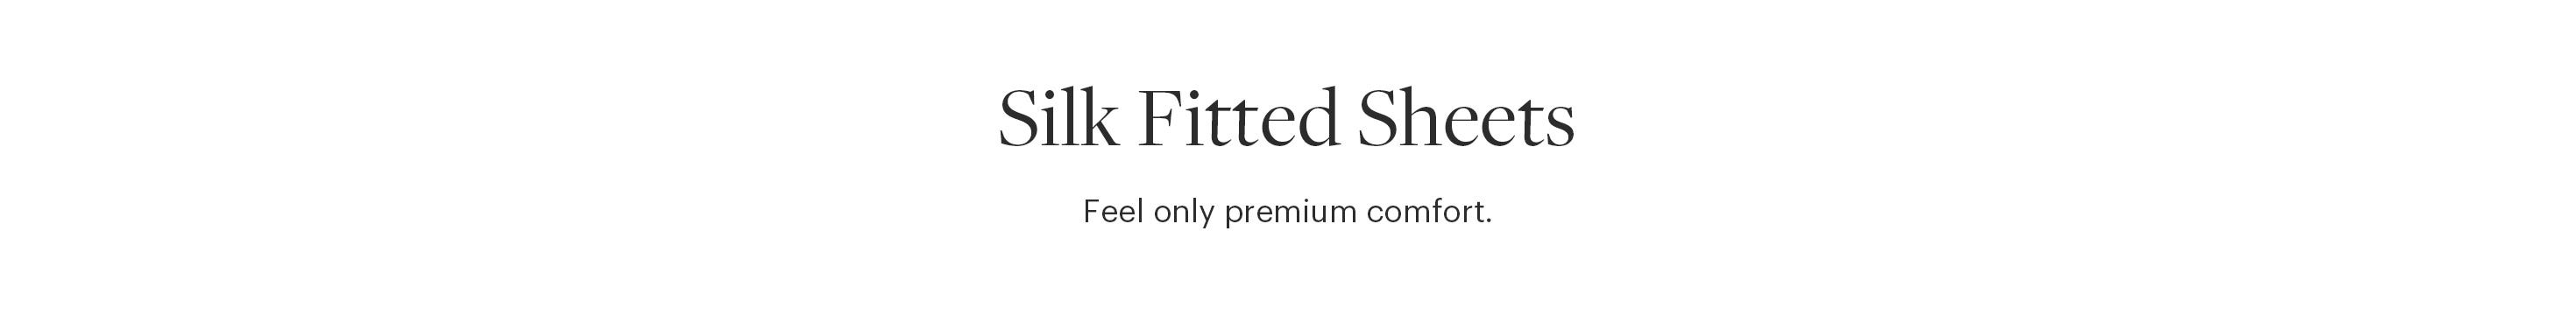 Silk Fitted Sheets